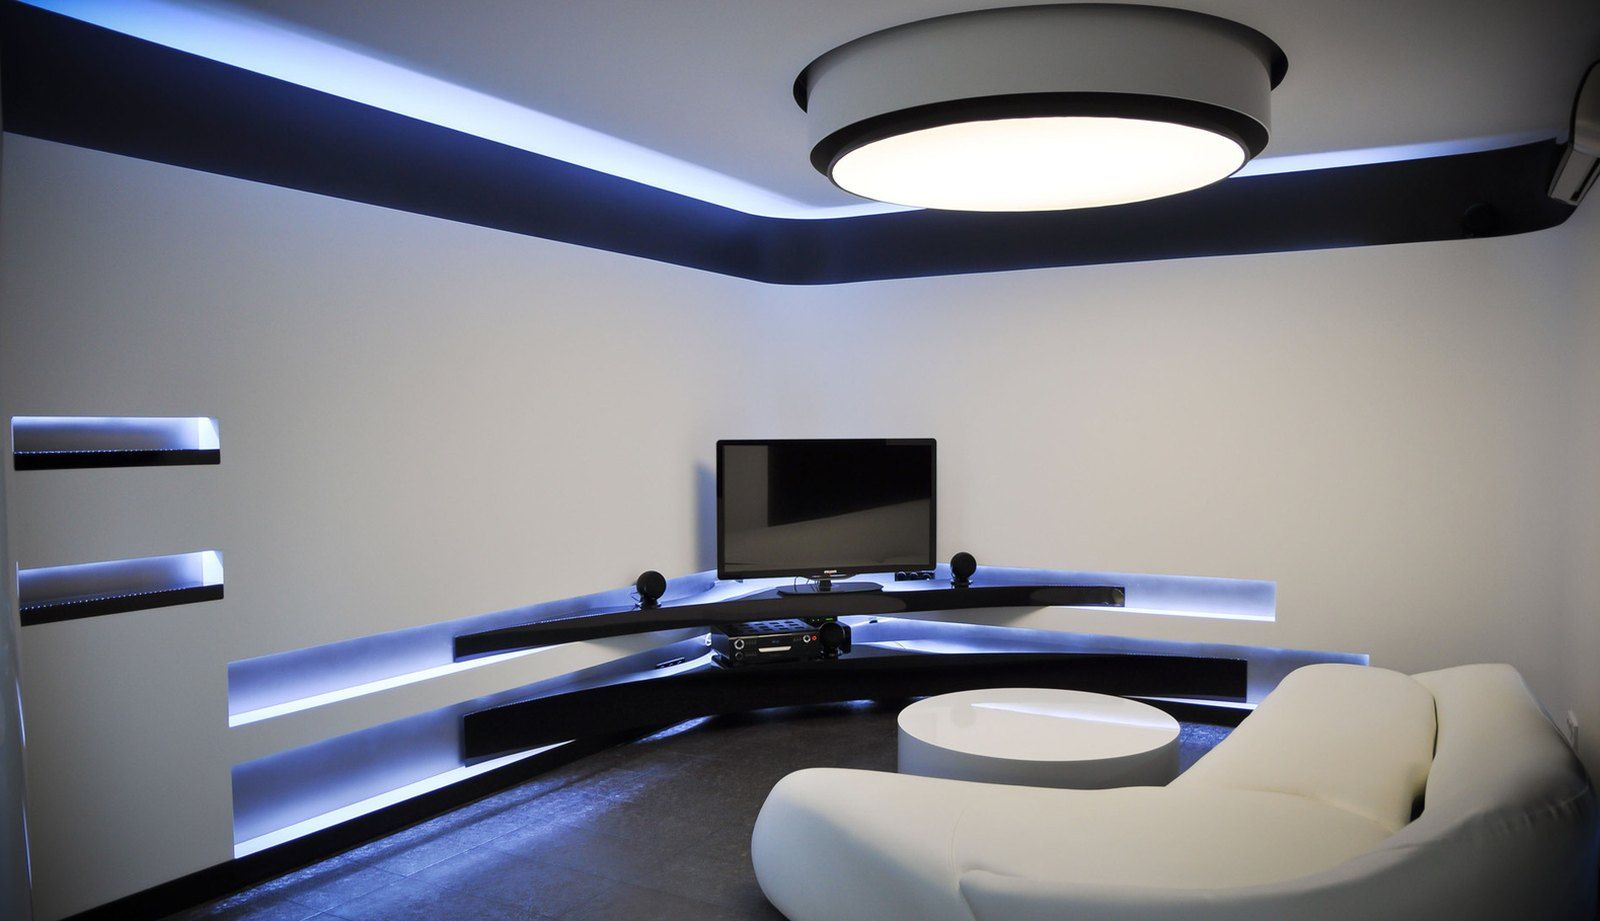 The Living Room In The High Tech Style Con Imagenes Casas